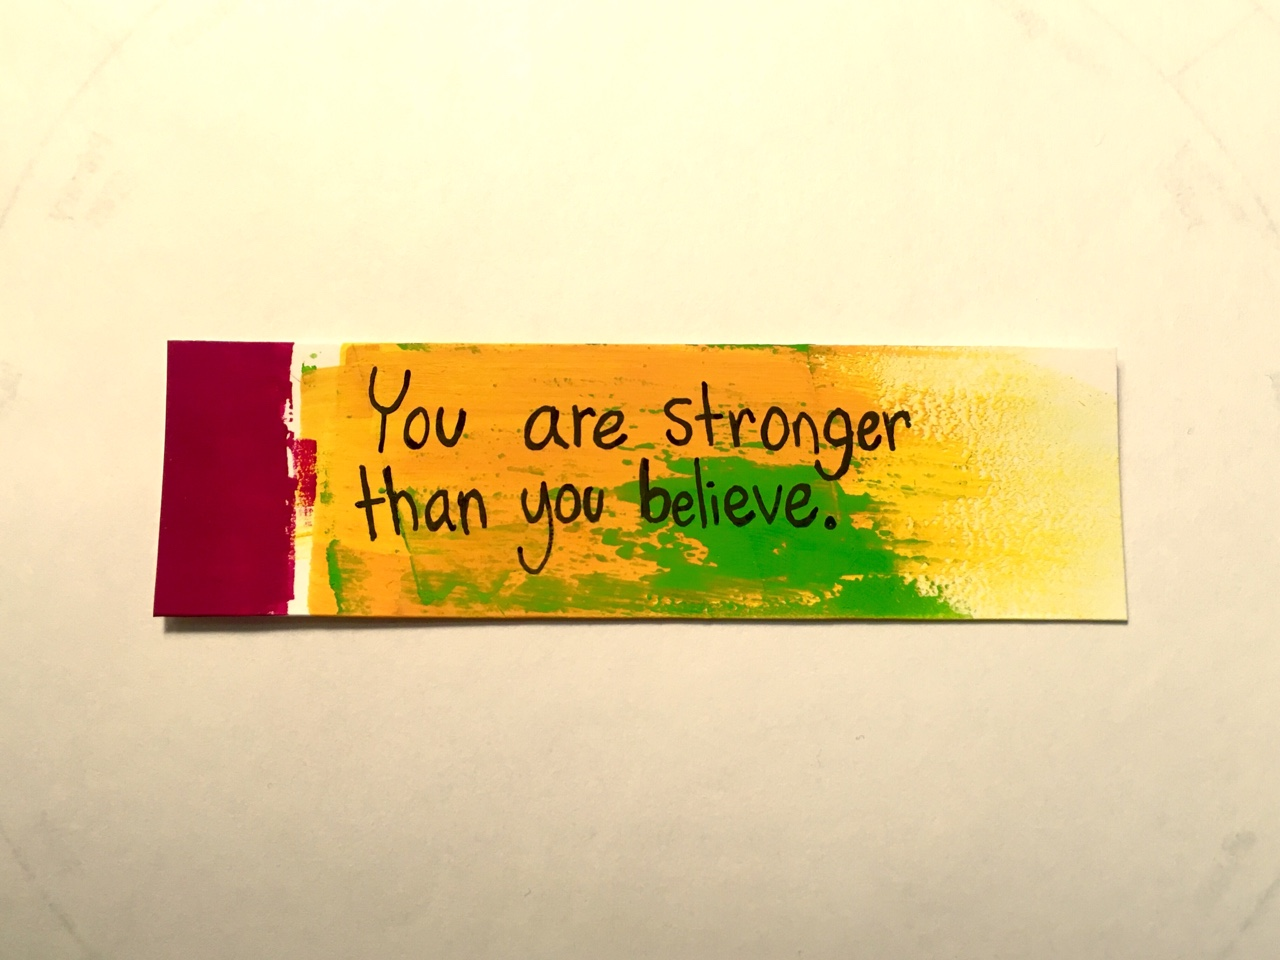 You are stronger than you believe. - Sayings